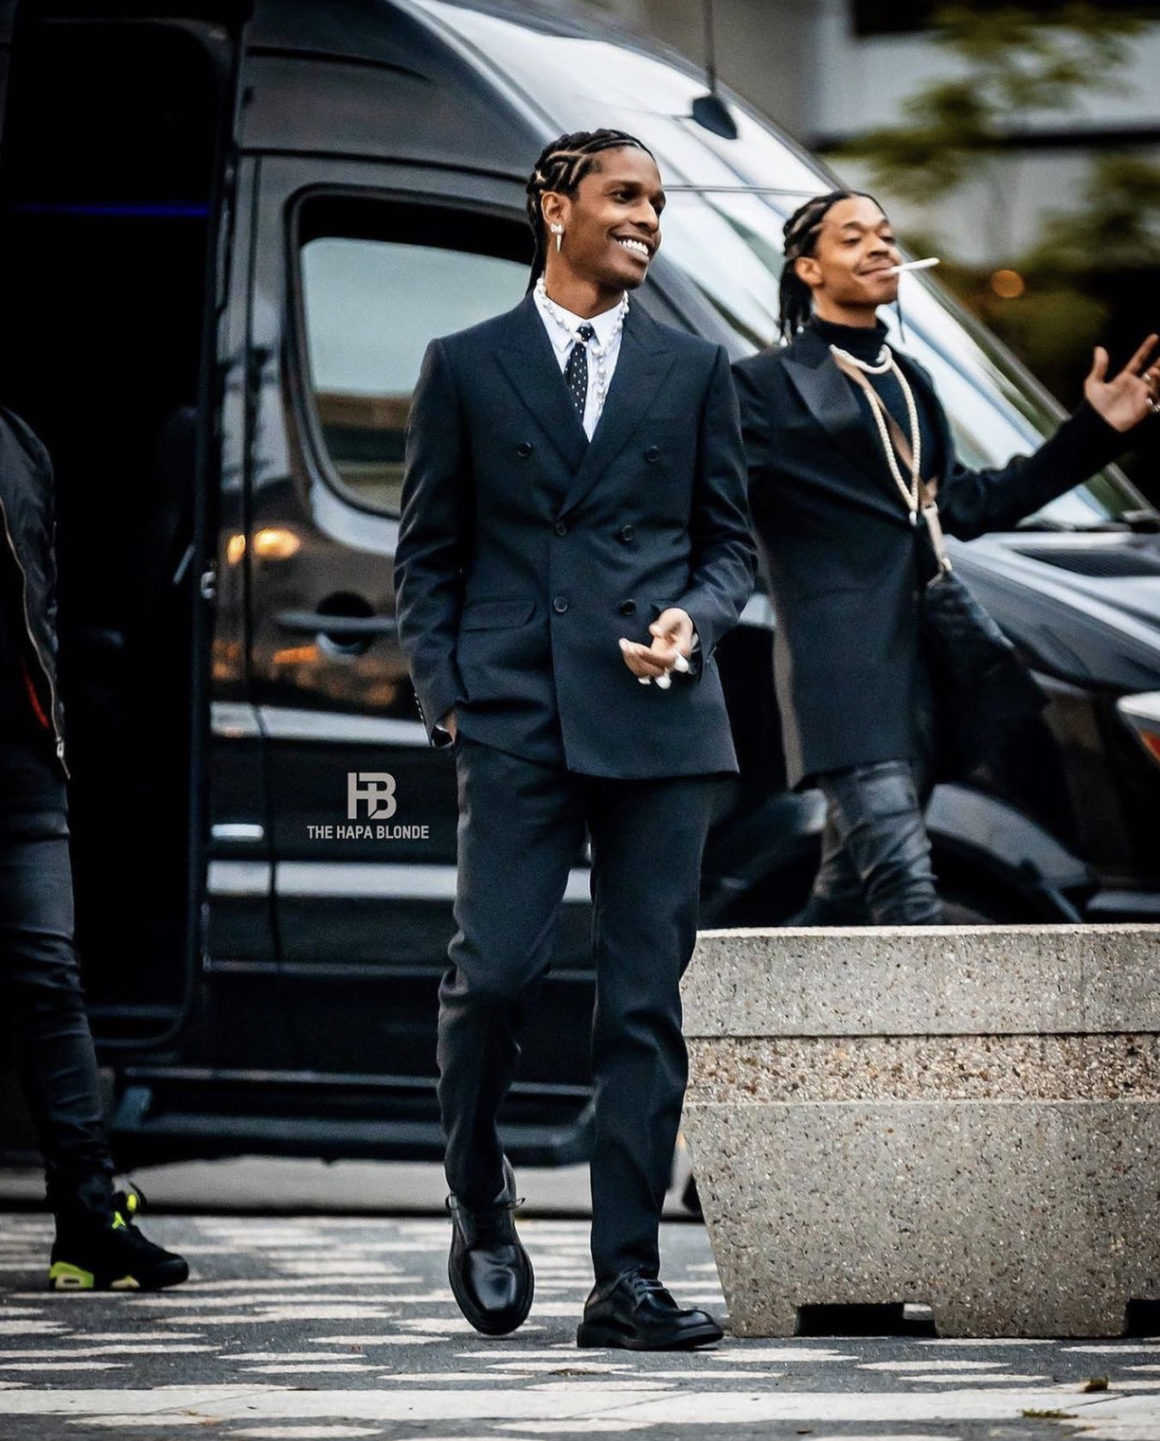 Fashion Bomb Men: A$AP Rocky Attends 2021 Tribeca Film Festival for Premiere of His Documentary 'Stockholm Syndrome' in Celine Black Suit and Bottega Veneta Leather Shoes